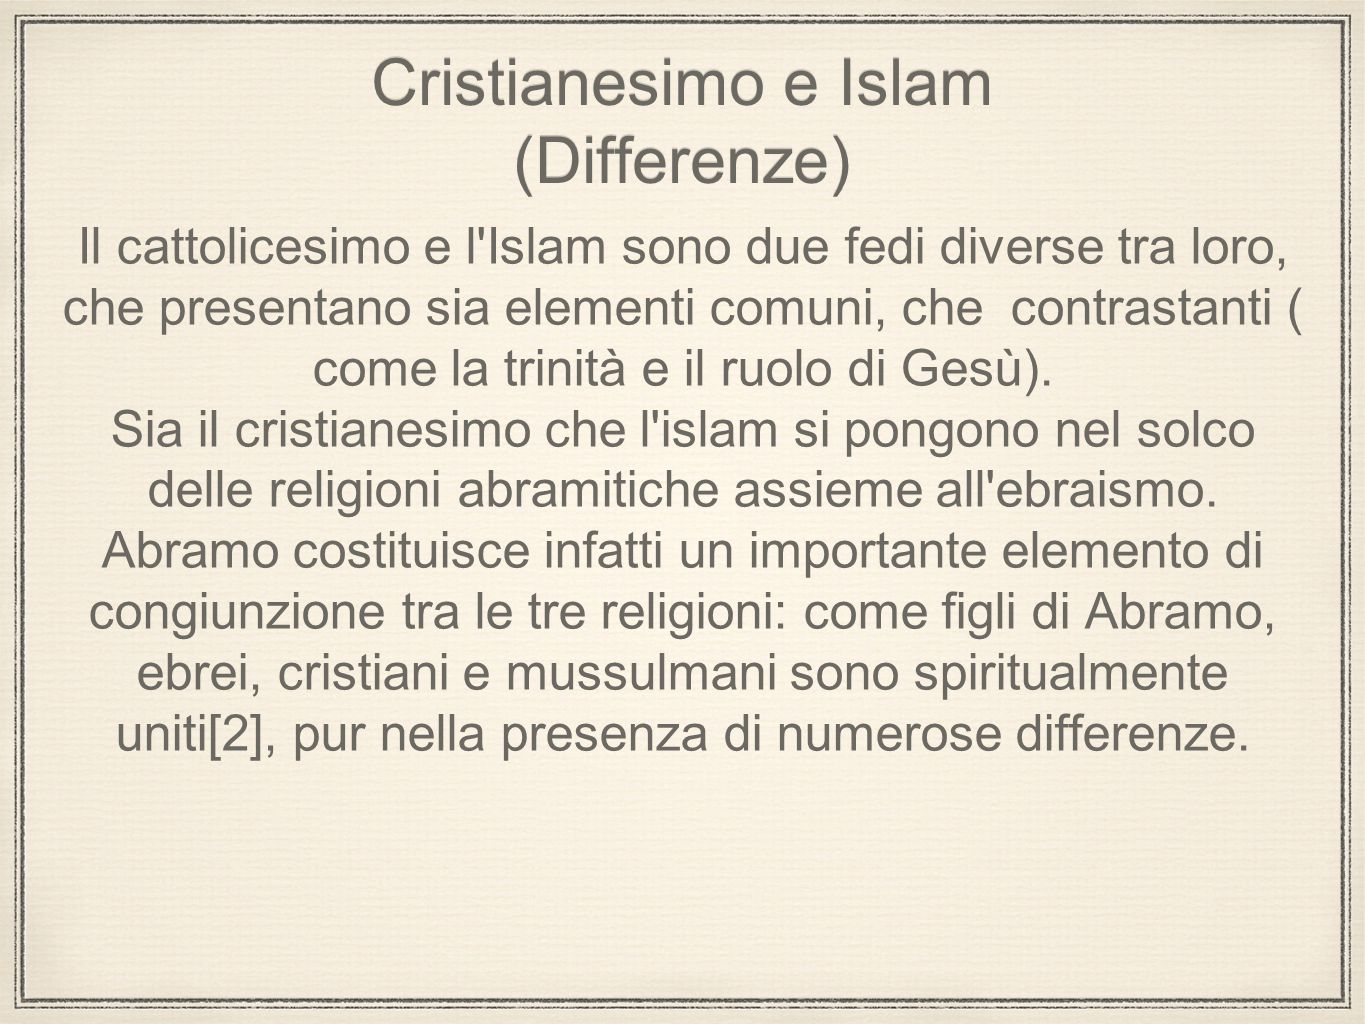 Cristianesimo e Islam (Differenze)